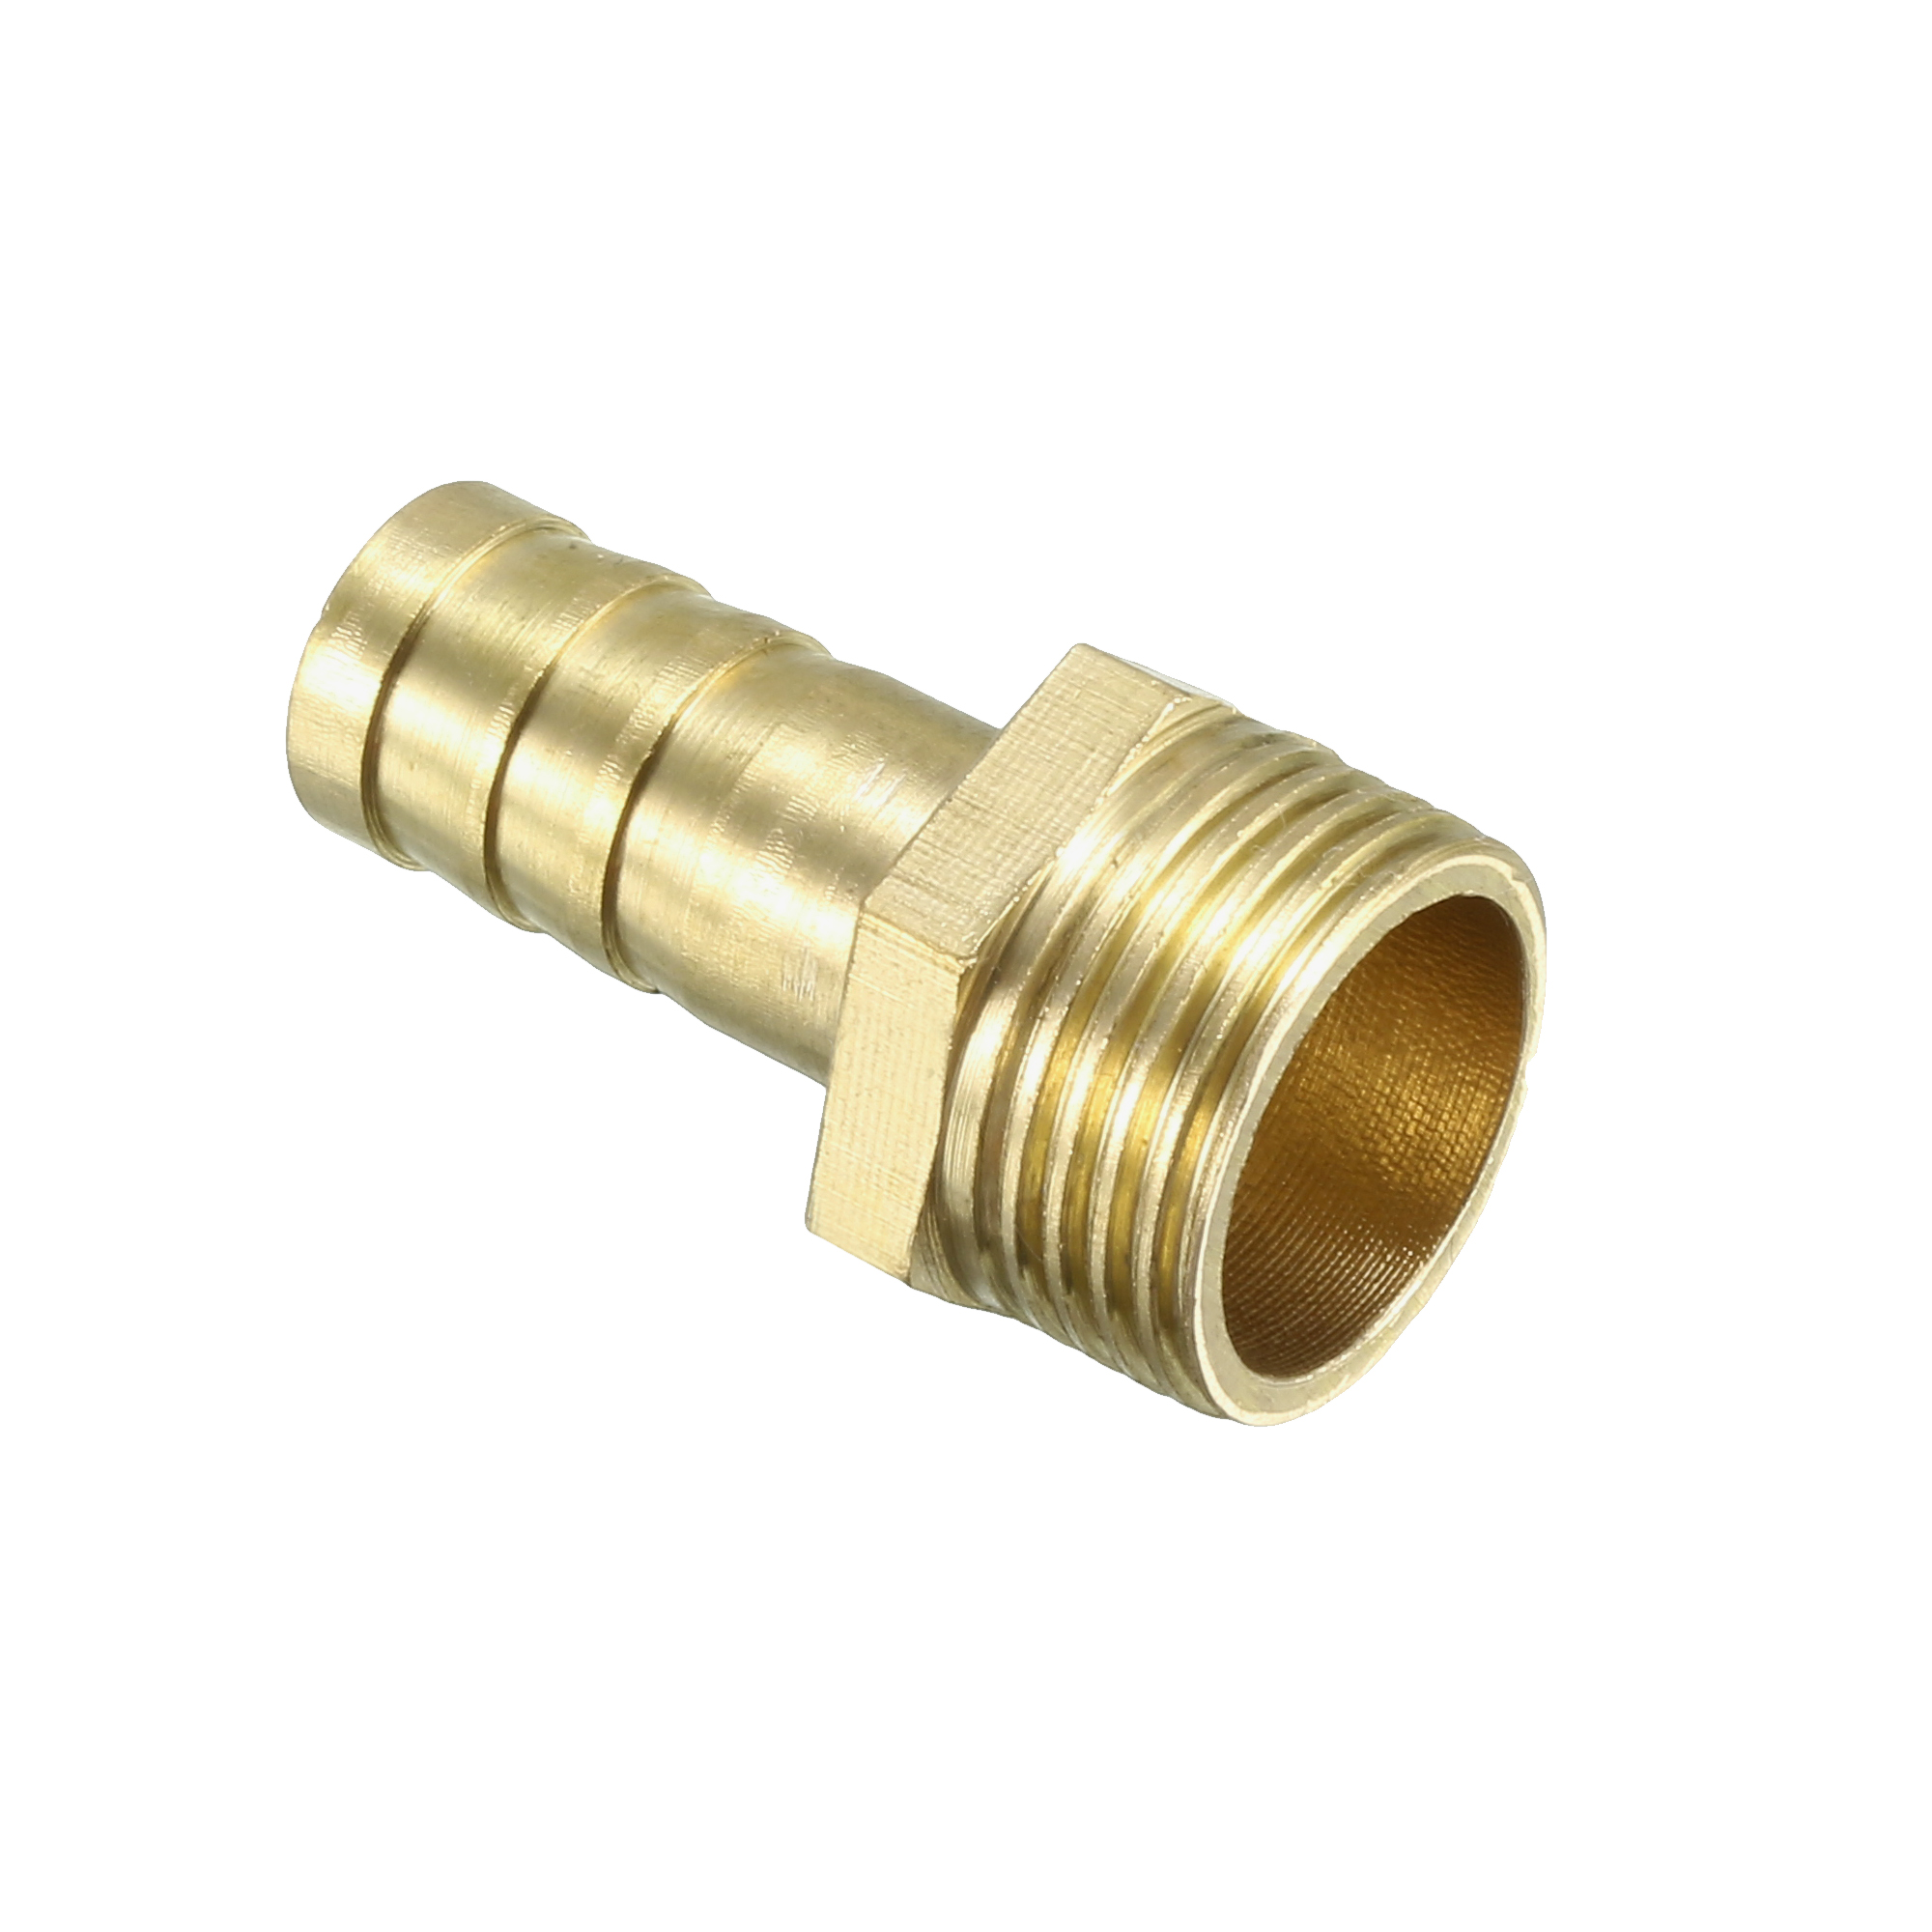 Brass Barb Hose Fitting Connector Adapter 10mm Barbed x 3/8 PT Male Pipe - image 4 of 4